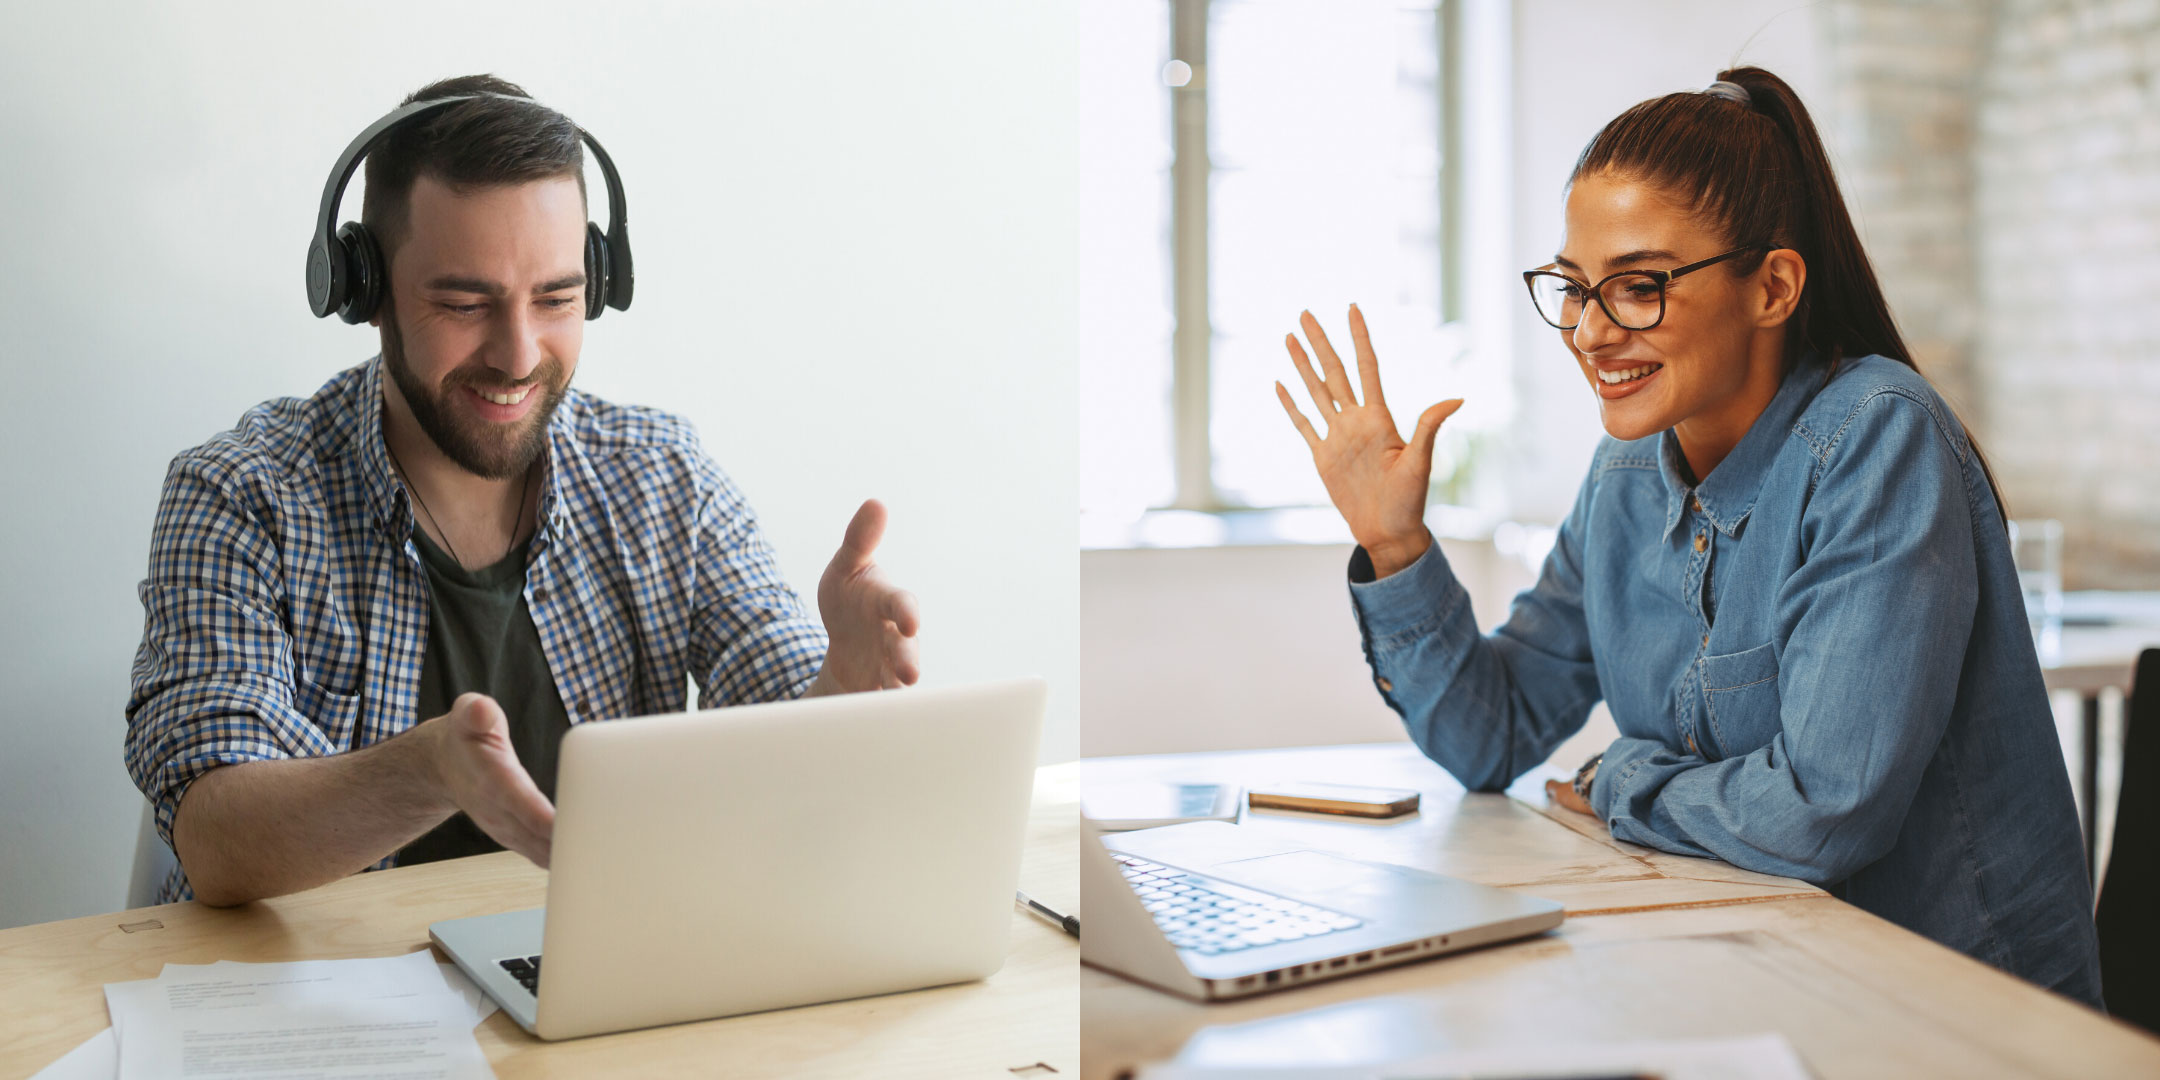 Managing a career conversation remotely